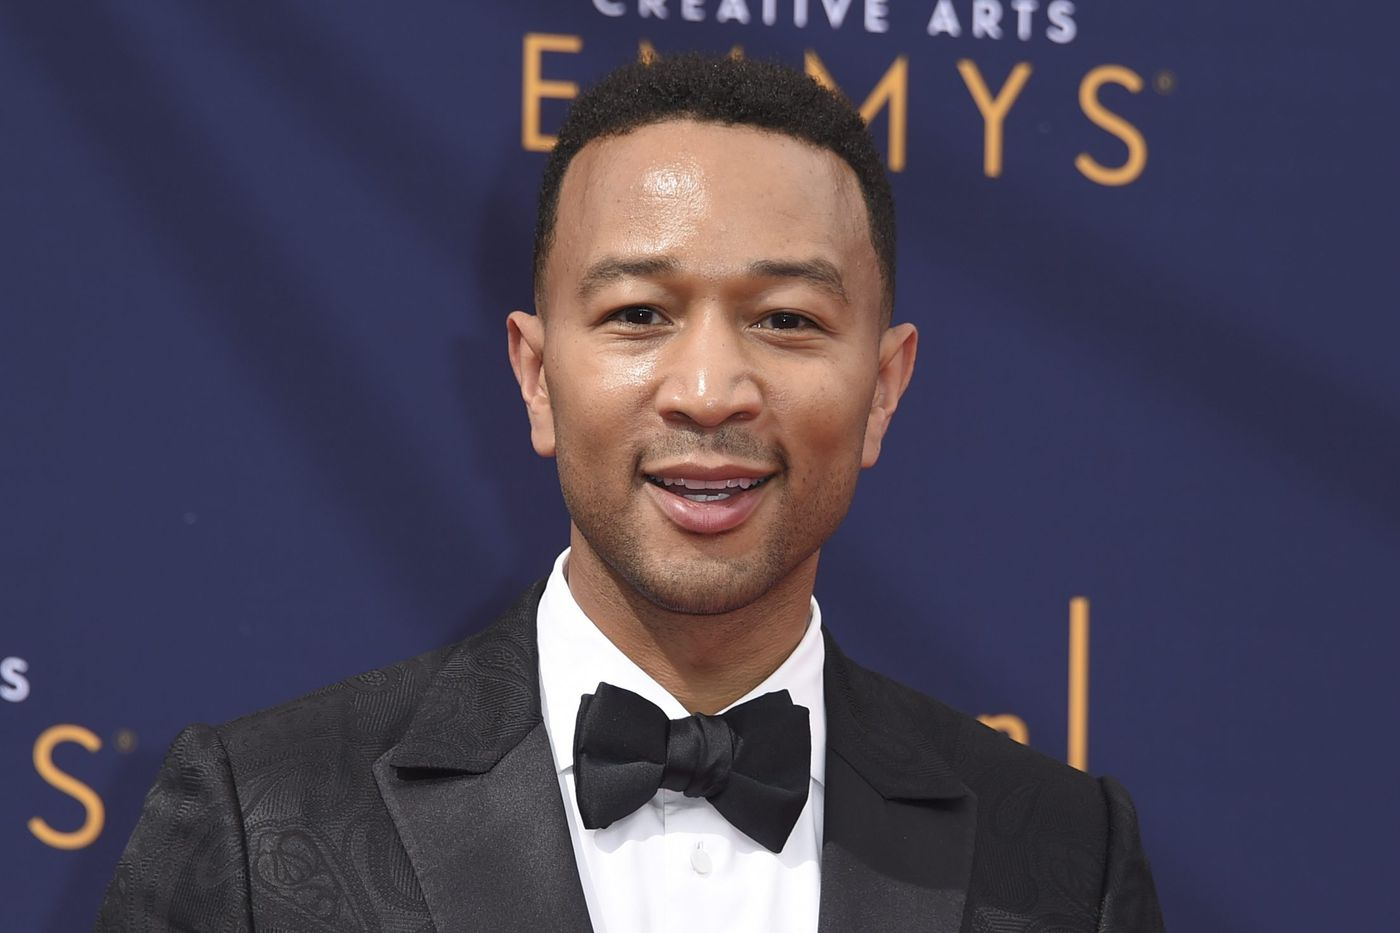 John Legend makes history as first African-American EGOT victor